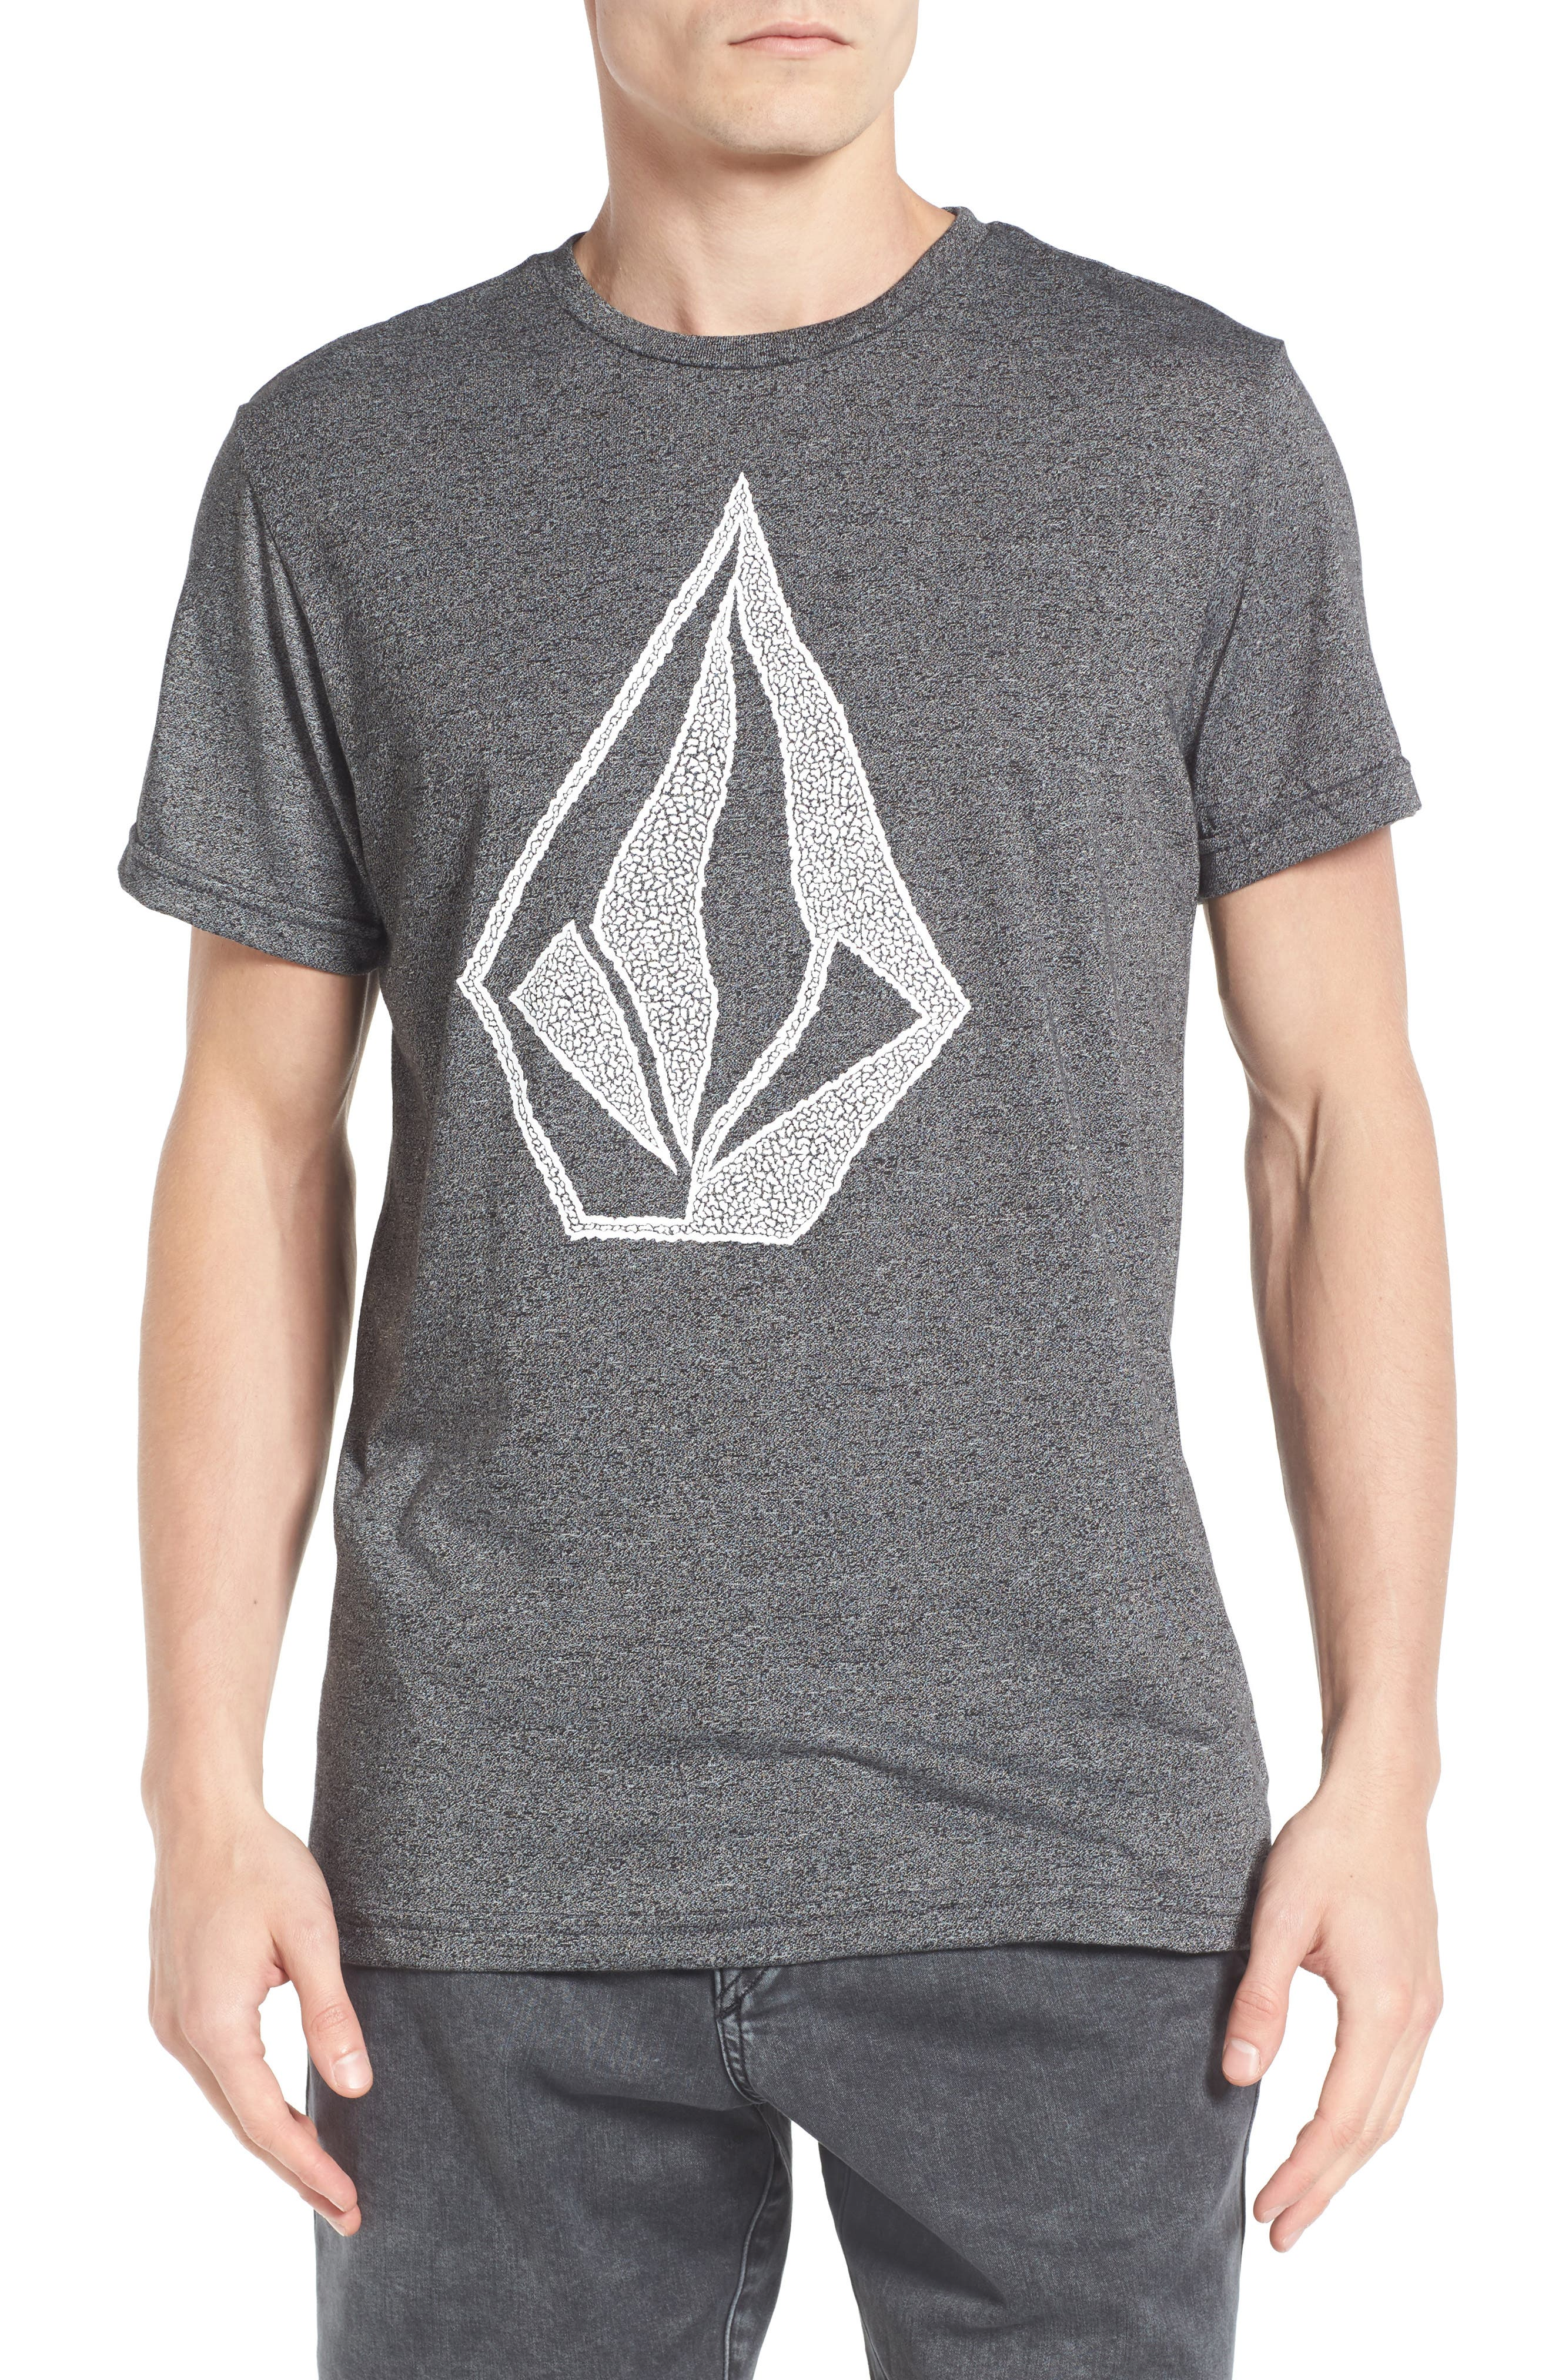 Volcom Creep Stone Graphic T-Shirt